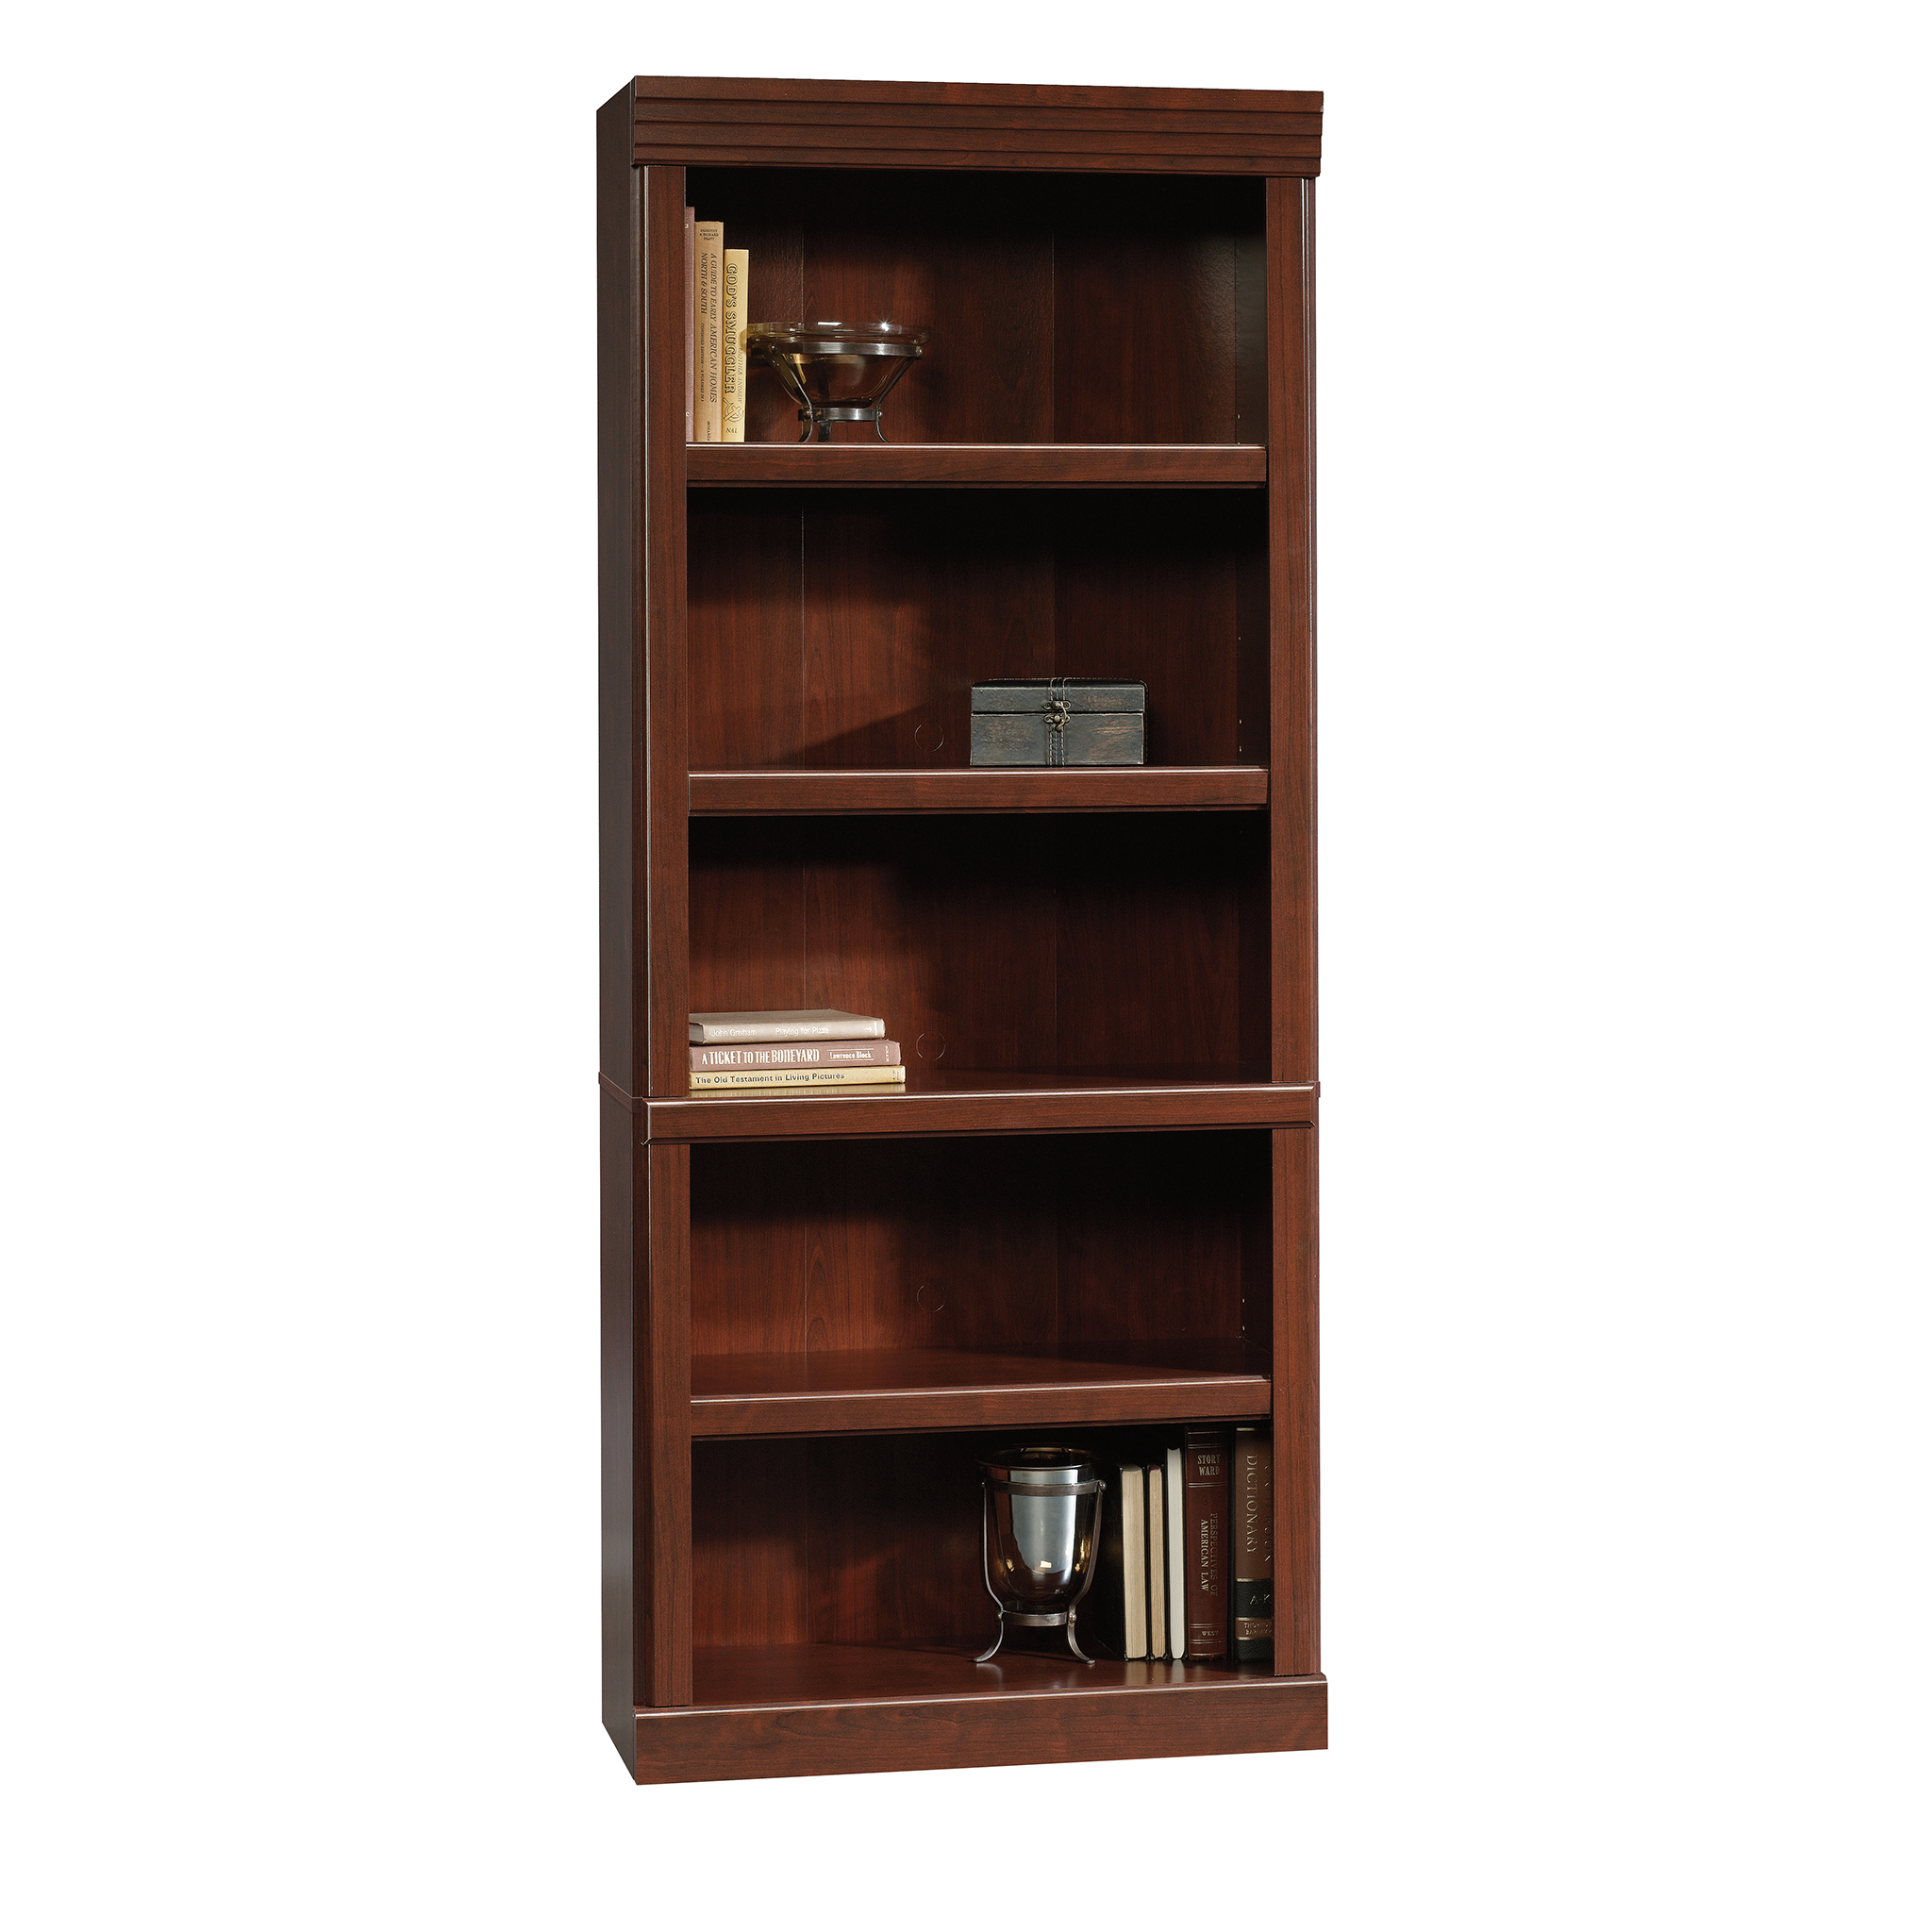 Sauder Heritage Hill 5 Shelf Library Bookcase, Classic Cherry Finish